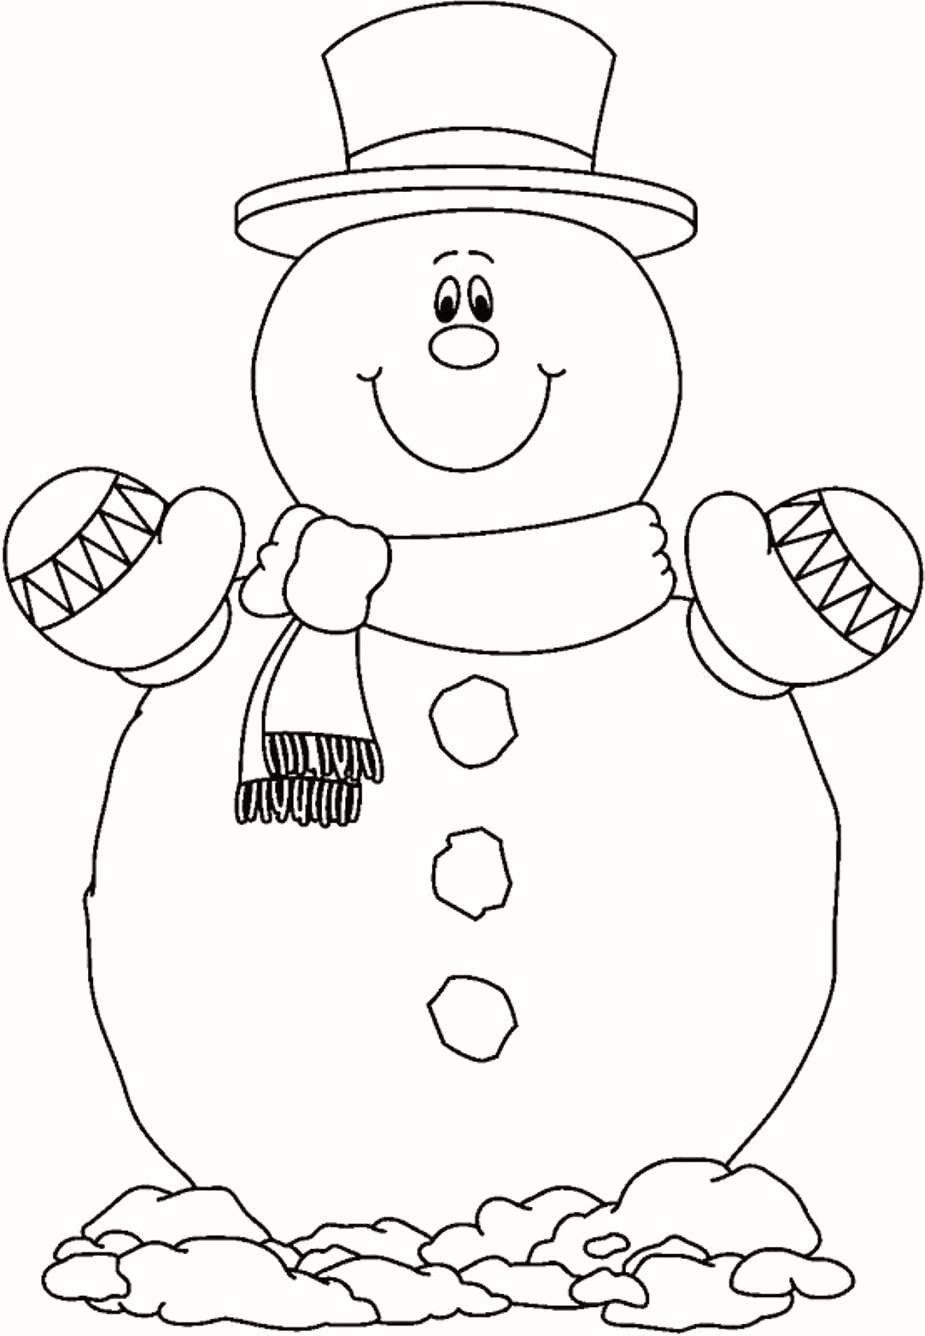 24 Wonderful Picture Of Frosty The Snowman Coloring Pages Davemelillo Com Snowman Coloring Pages Coloring Pages Winter Christmas Coloring Pages